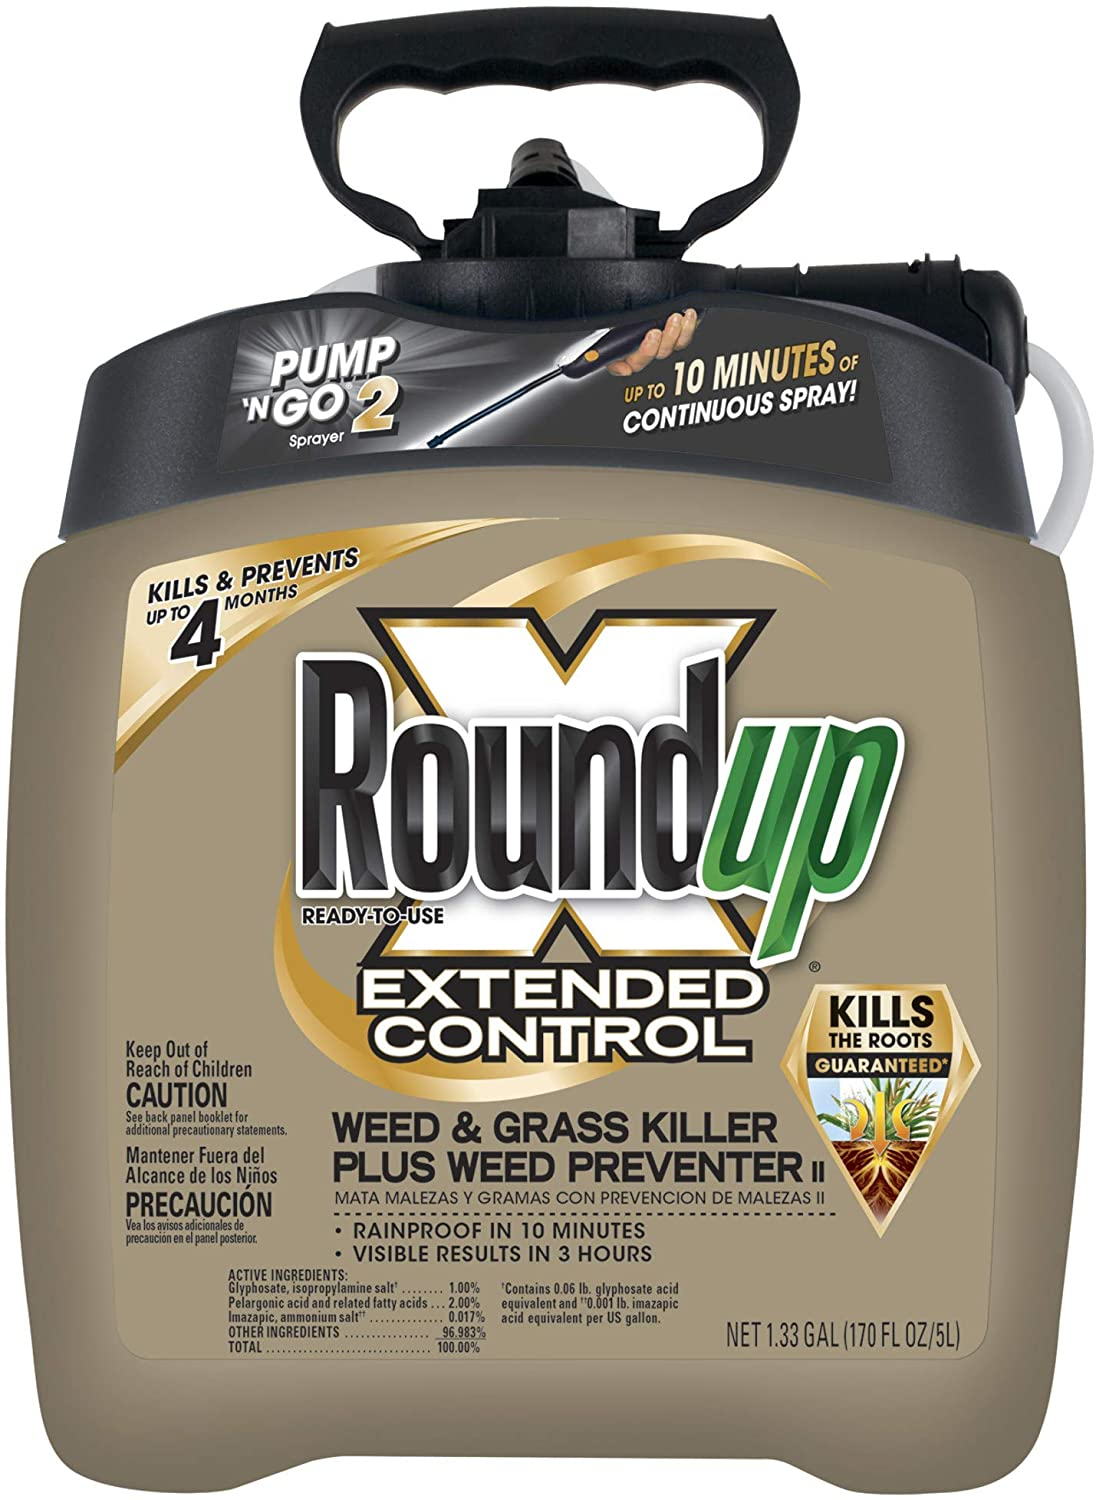 Roundup Ready-To-Use Extended Control Weed & Grass Killer Plus Weed Preventer II with Pump 'N Go 2, 1.33 gal.